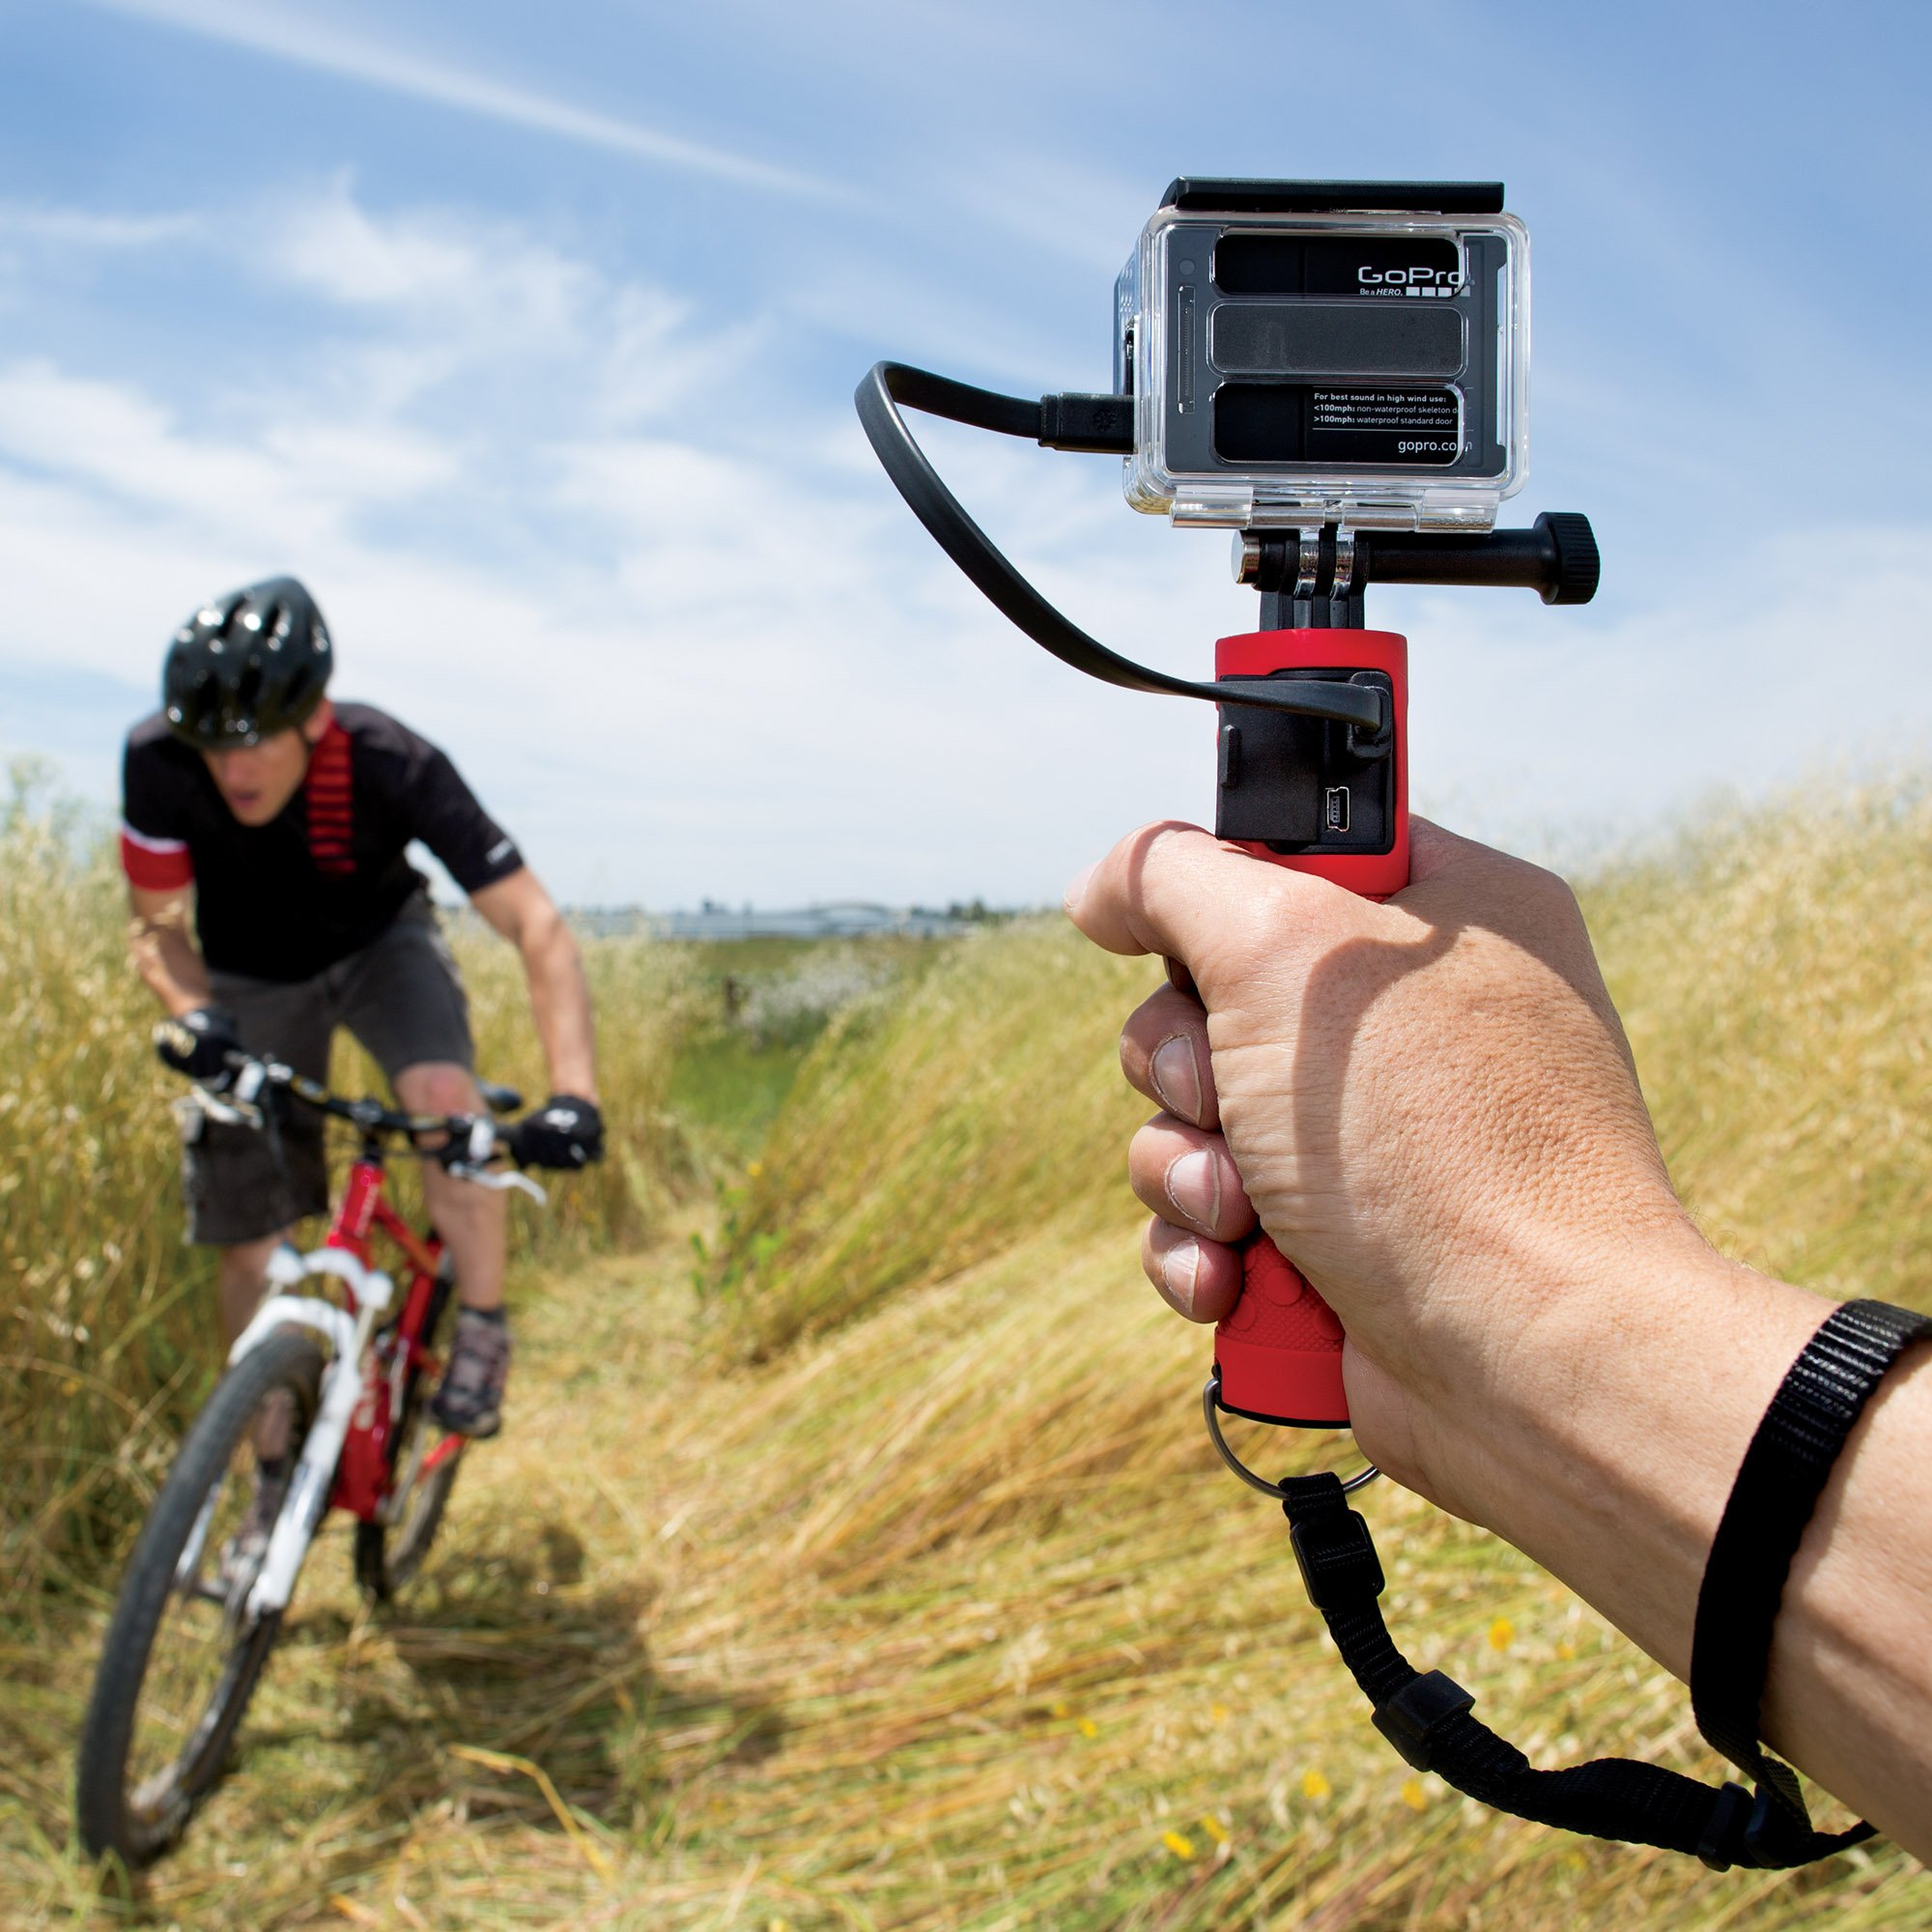 JOBY Action Battery Grip- Portable Battery Charger and Hand Grip for GoPro and Action Video Cameras.